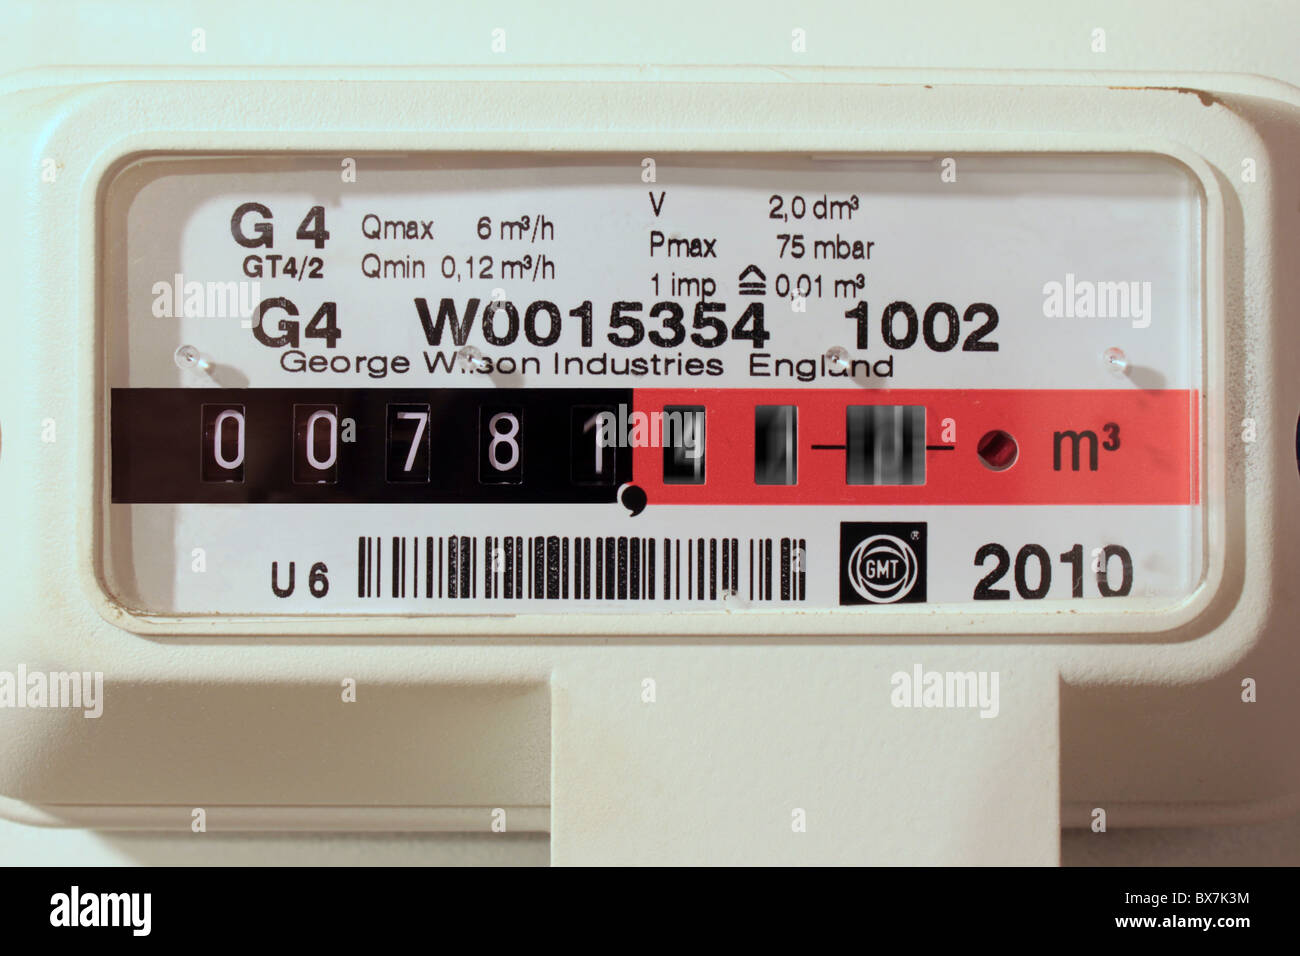 Gas meter with motion blur on digits to imply high consumption Stock Photo